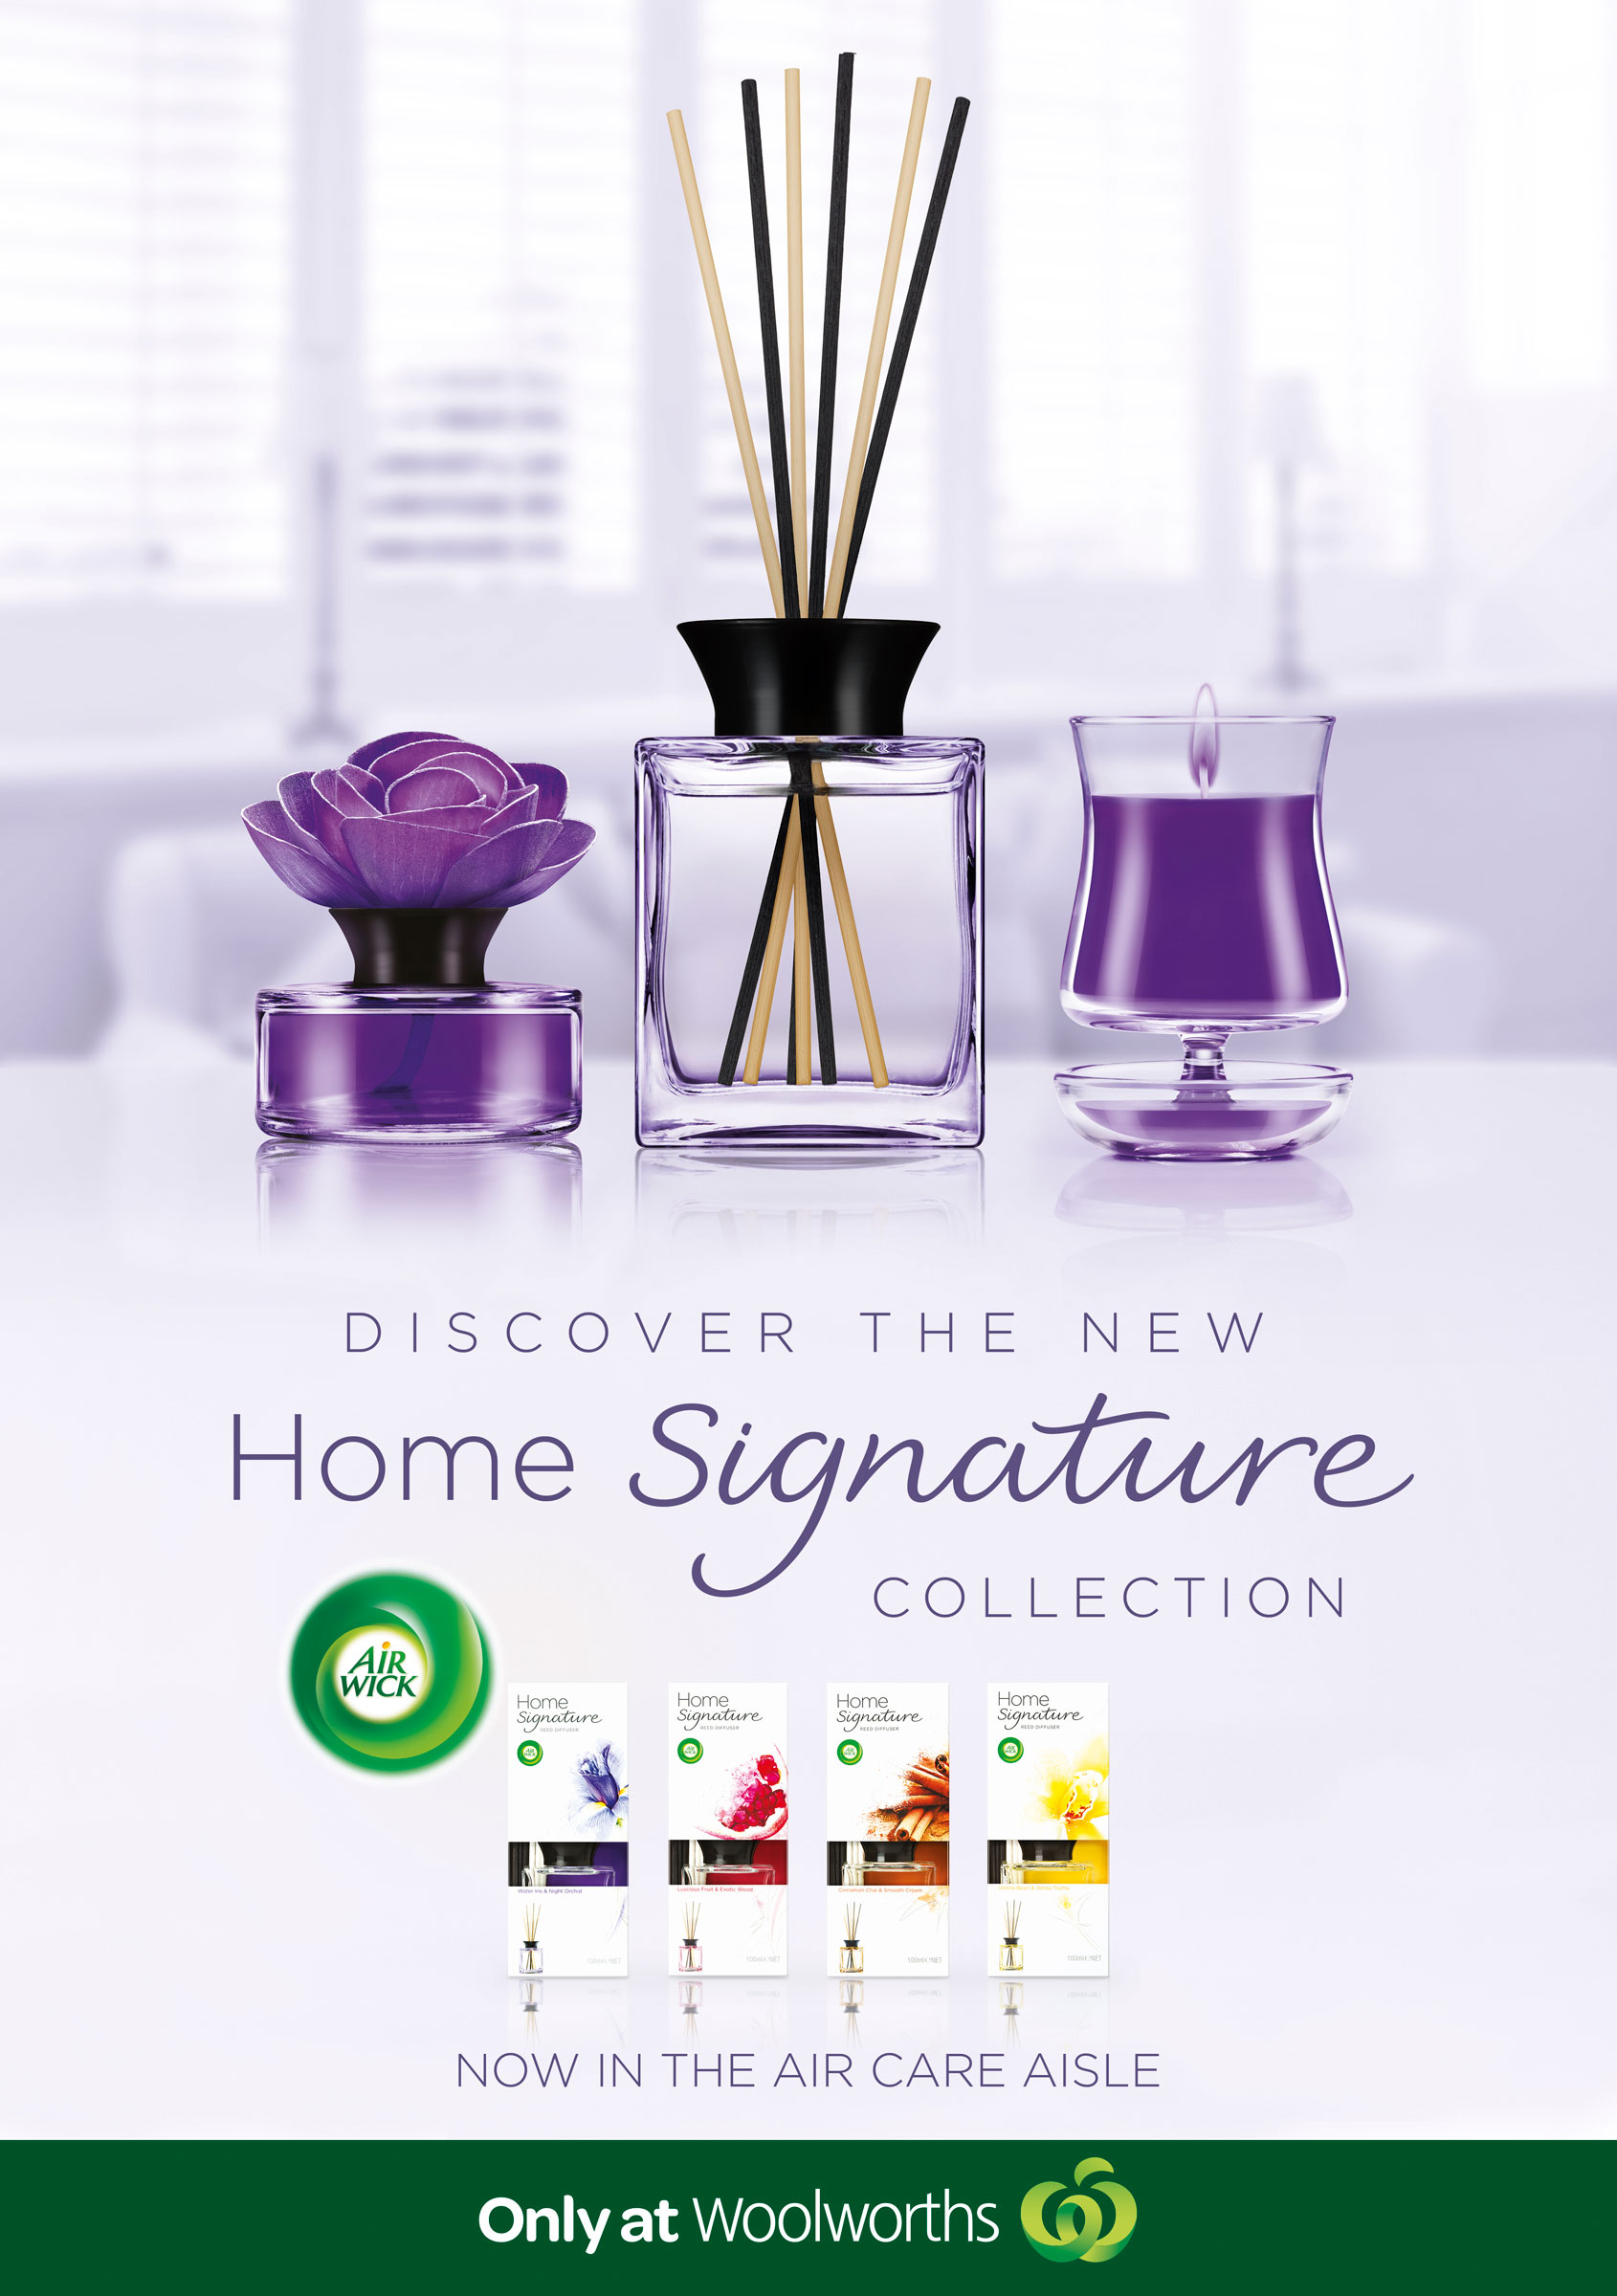 advertising campaign of home fragrances